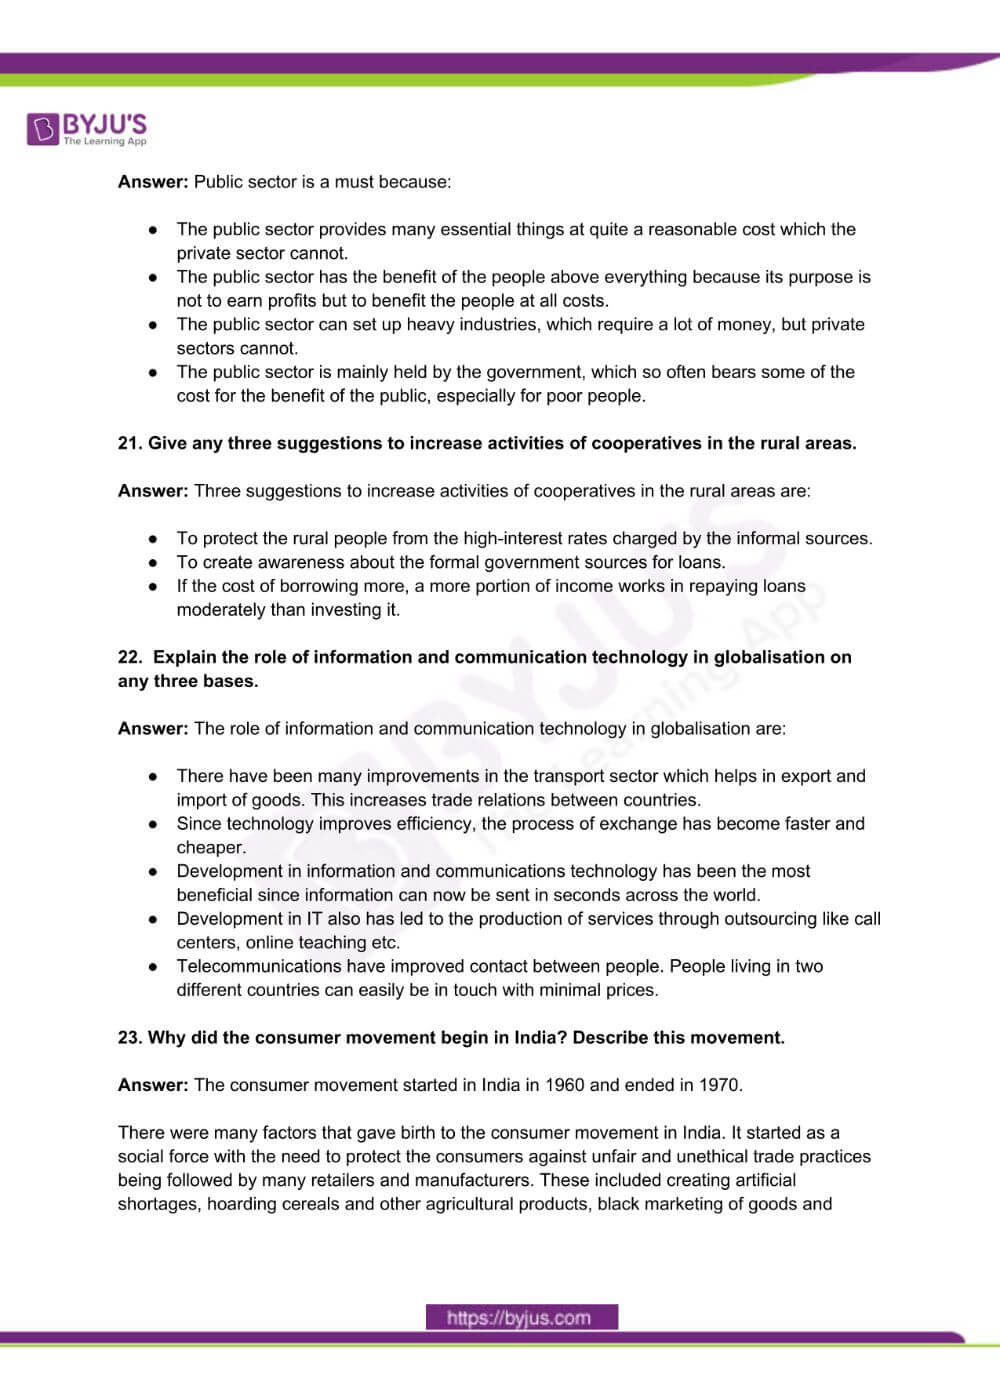 RBSE Class 10 Social Science Question Paper Solutions 2015 PDF 4